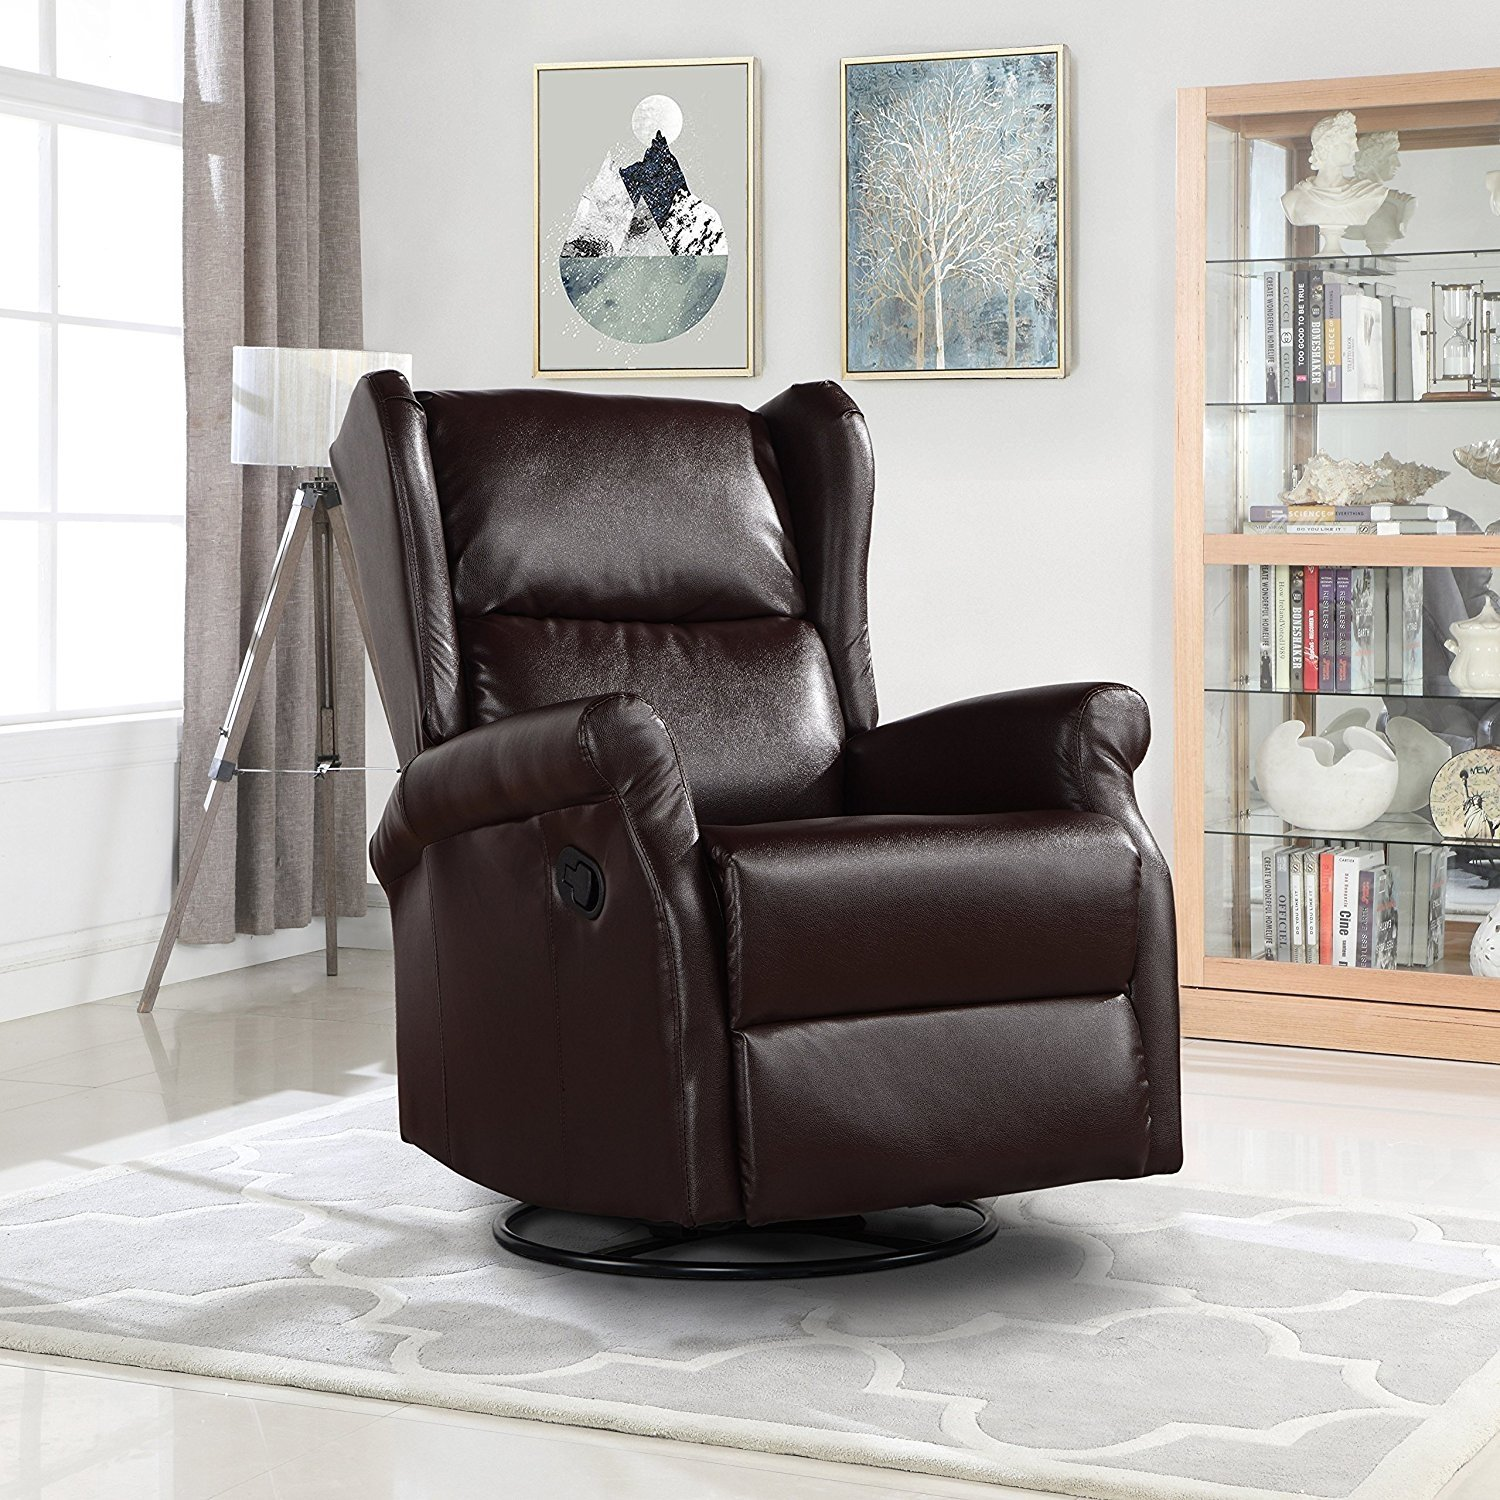 Reclining Swivel Accent Chair for Living Room, Faux ...